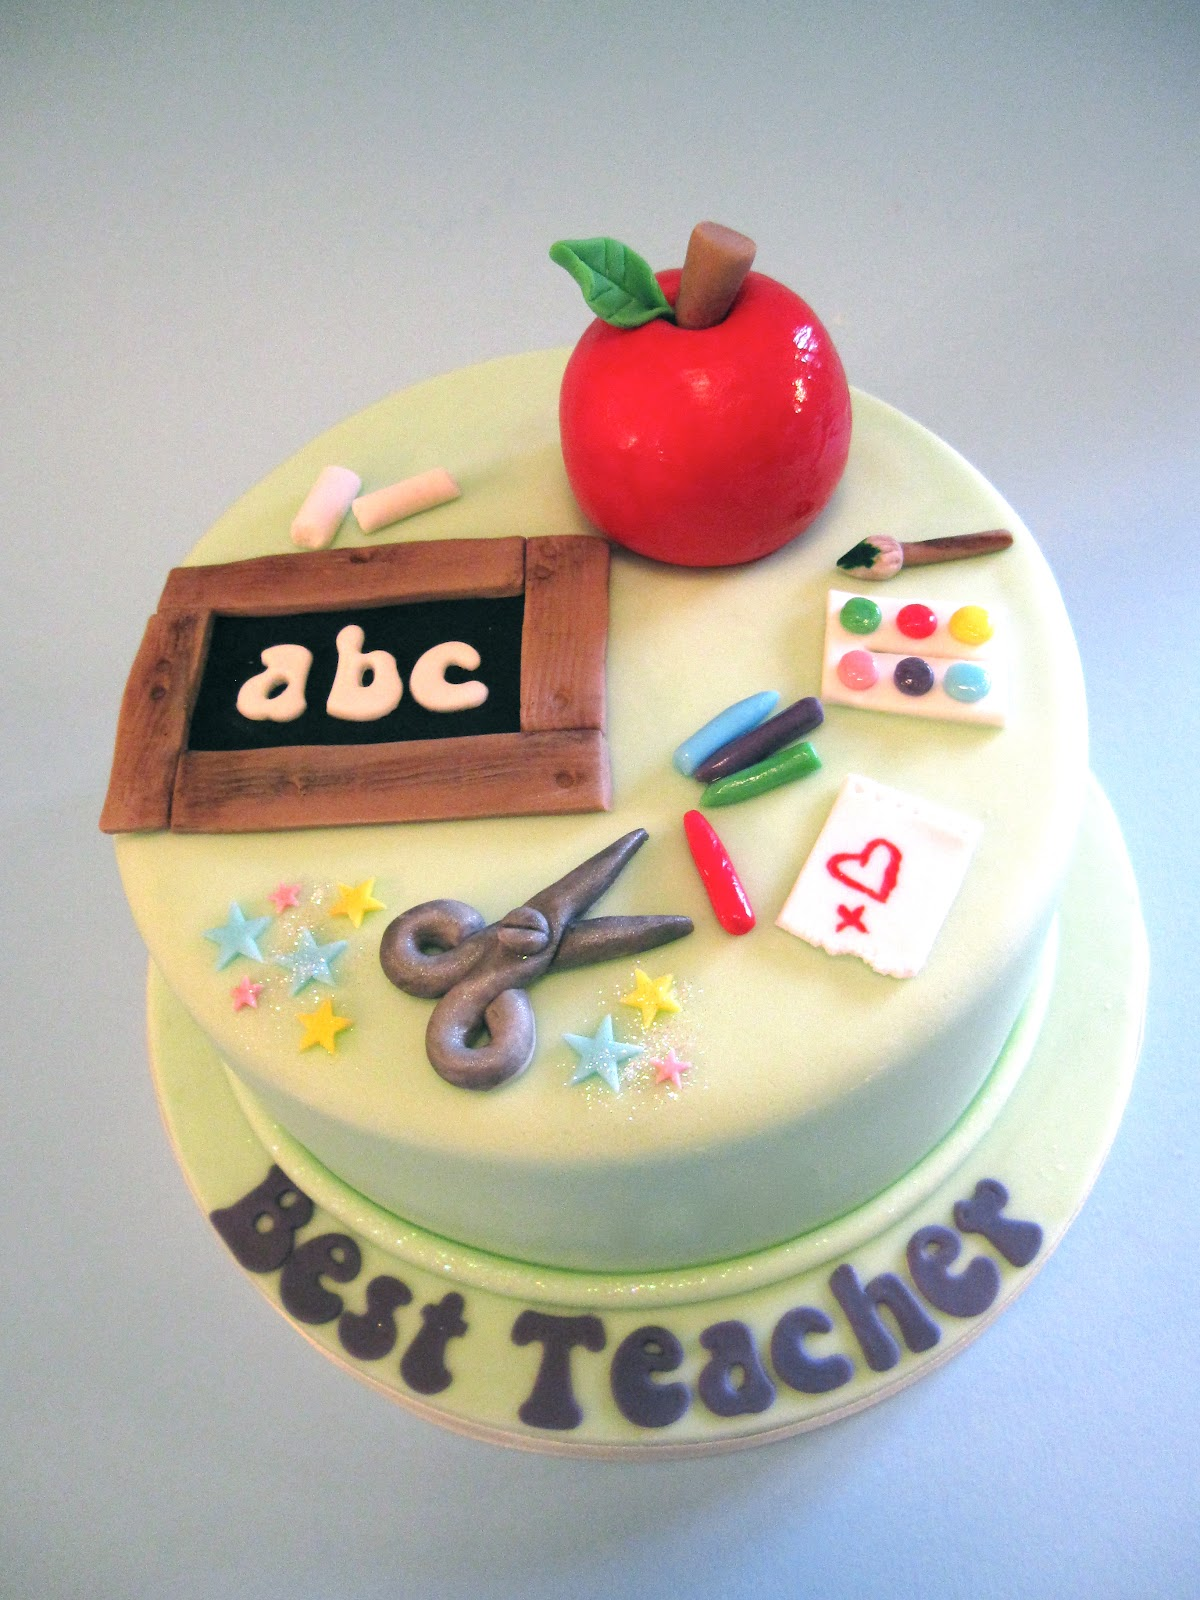 Best Cake Design Schools : Redirecting